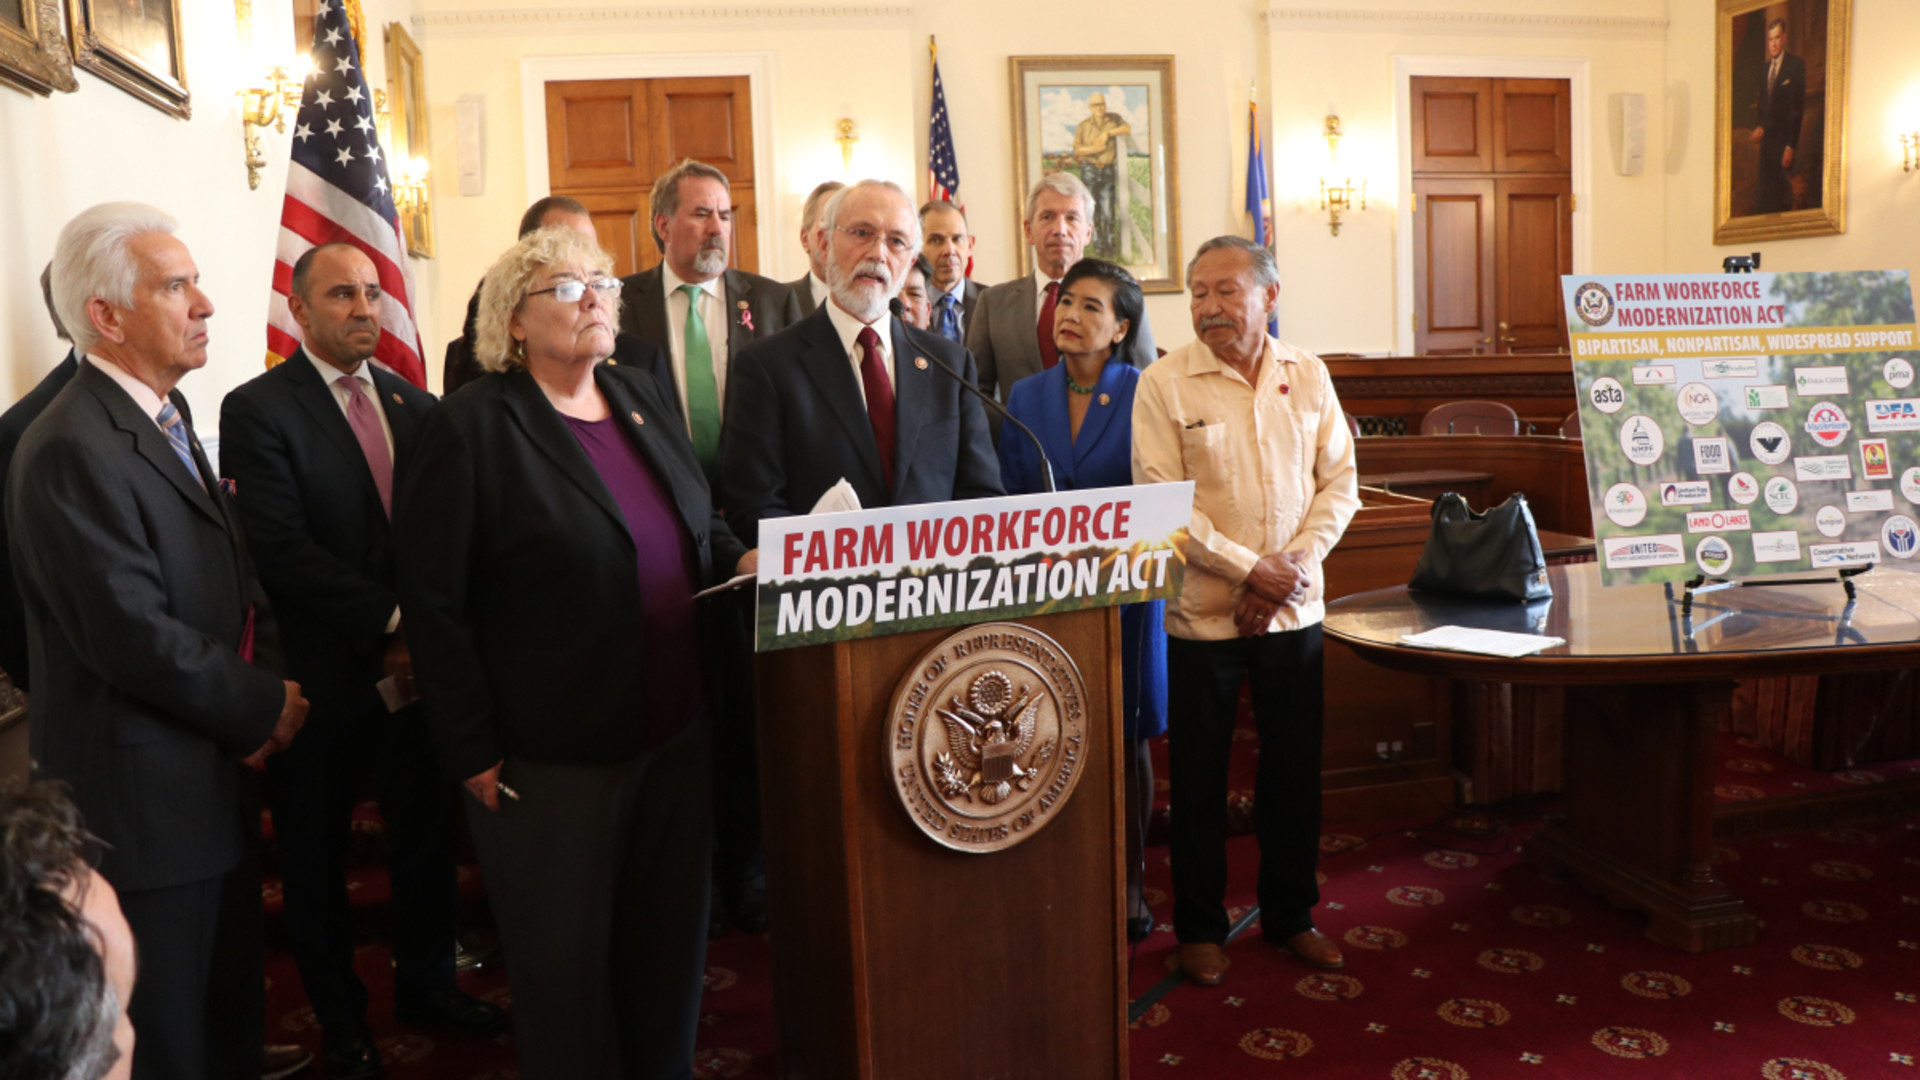 Farm Workforce Modernization Act Updt Pt 1